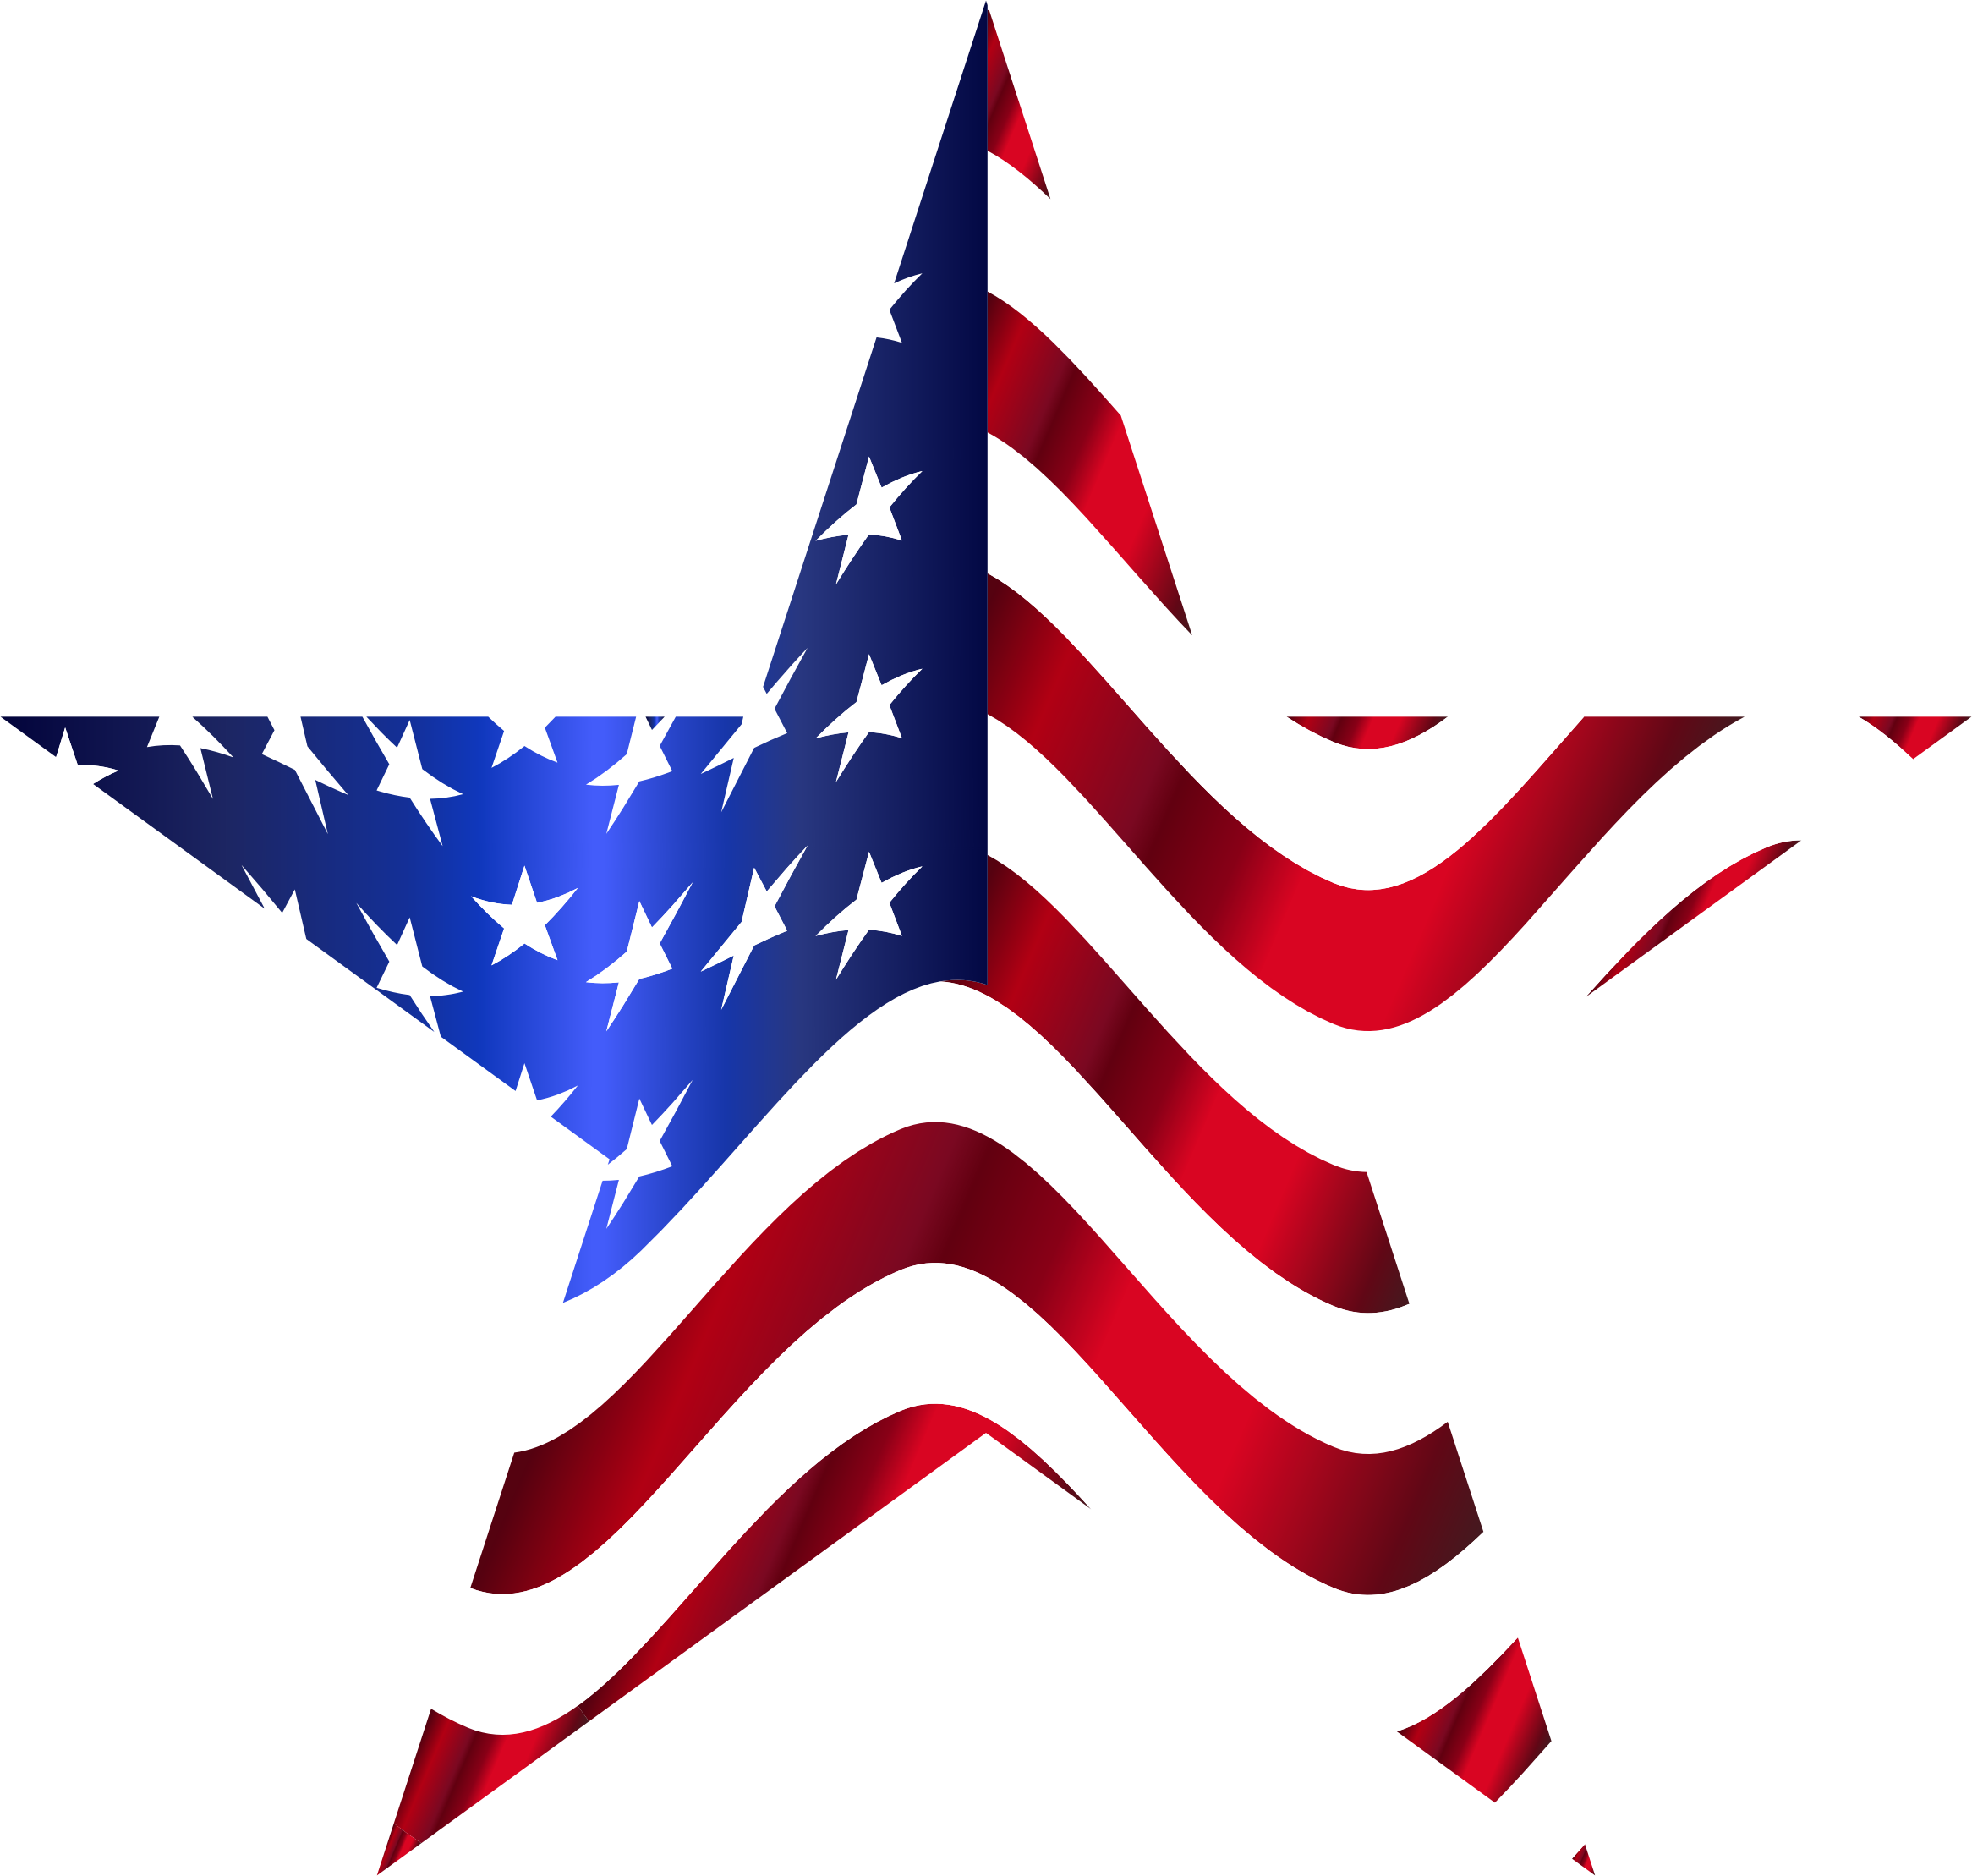 American star clipart clip black and white stock Clipart - American Flag Star 2 clip black and white stock